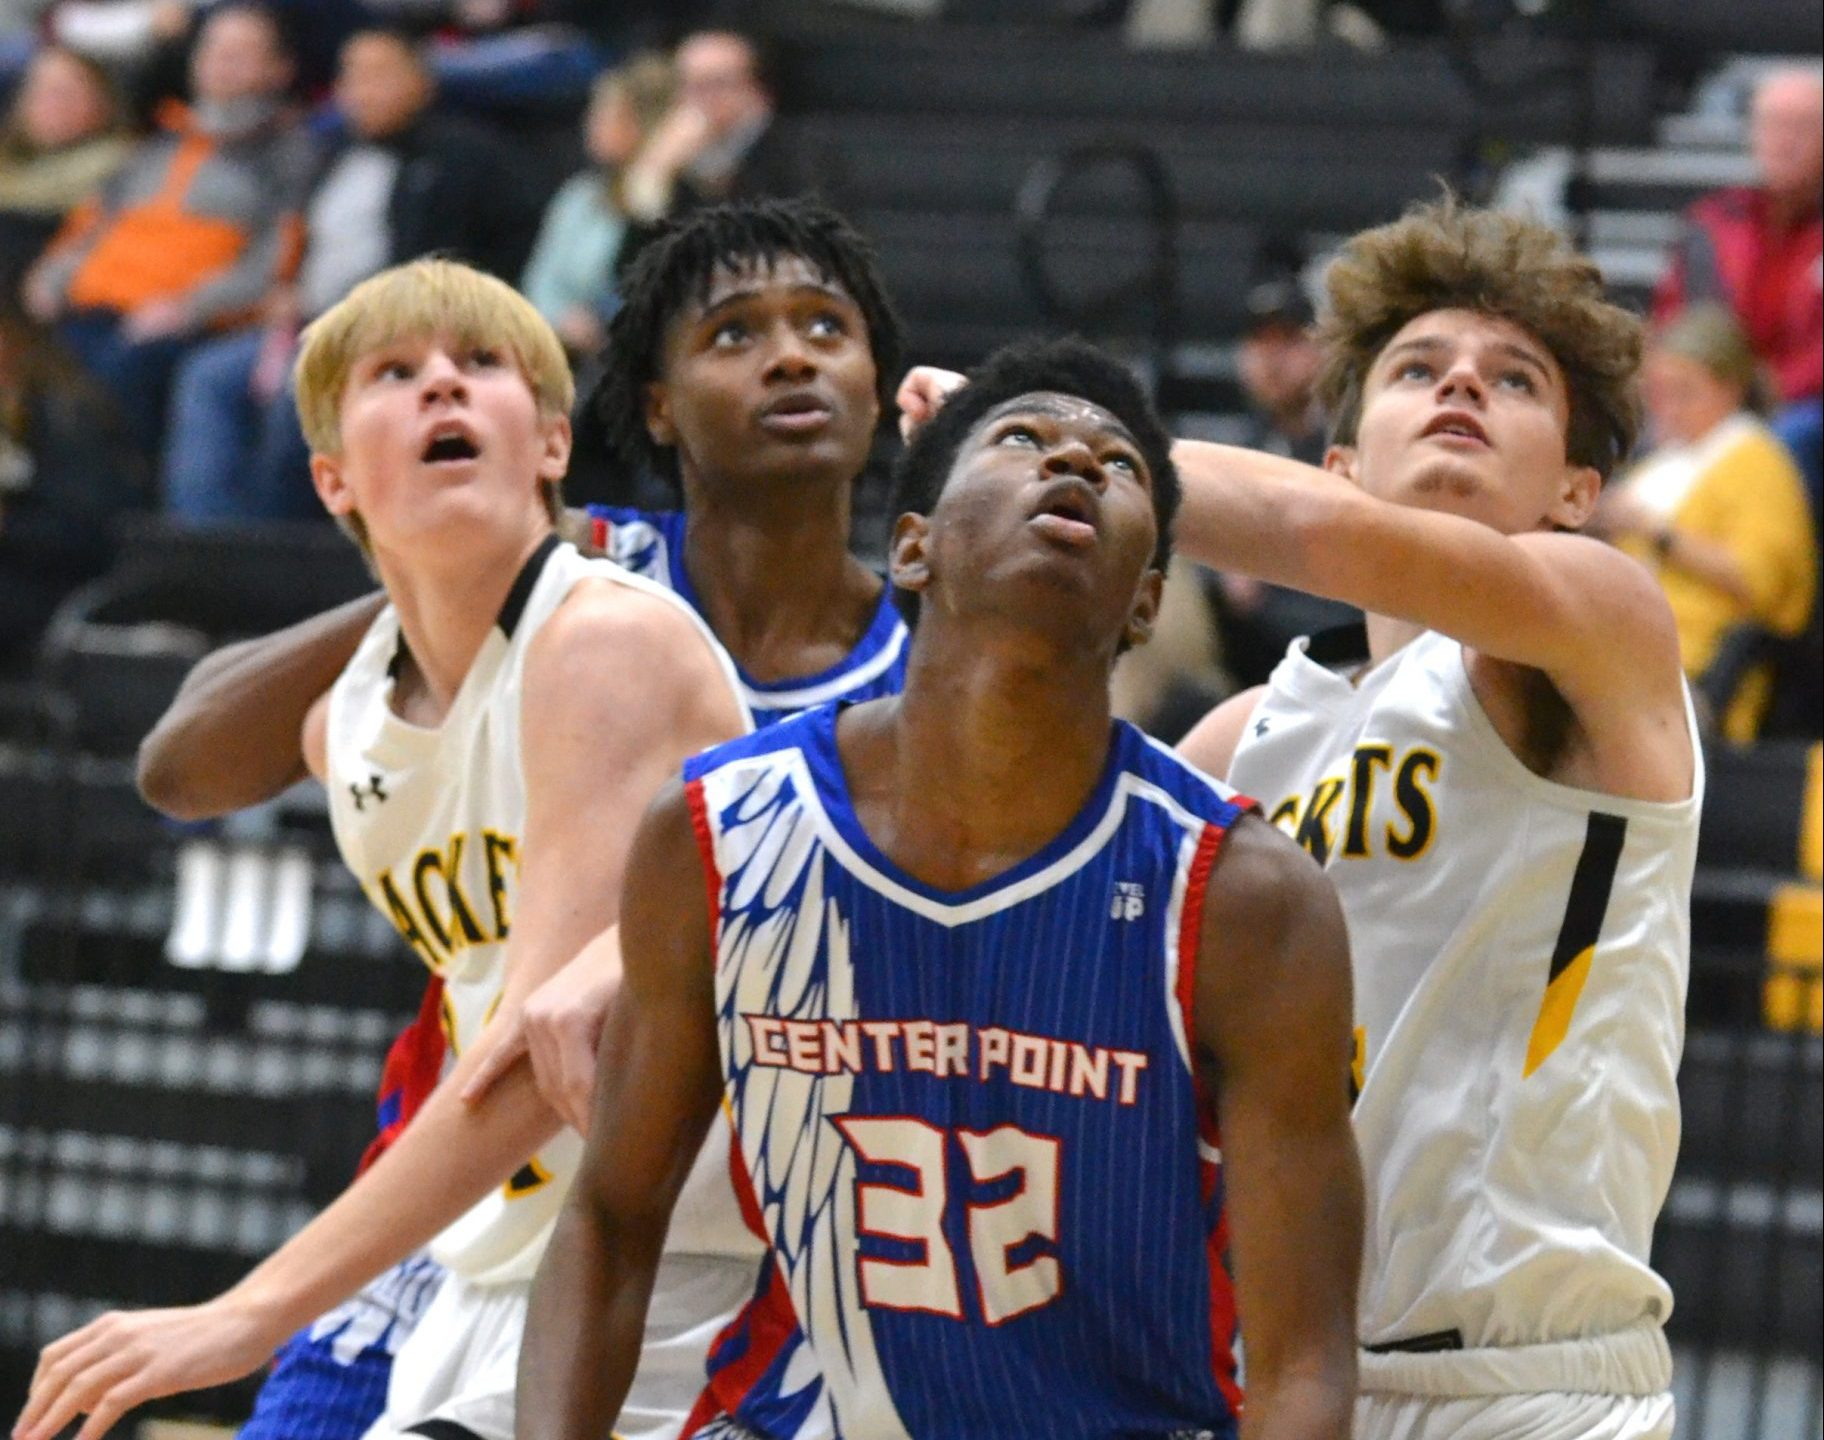 Basketball rankings: See where local teams stand in updated ASWA poll